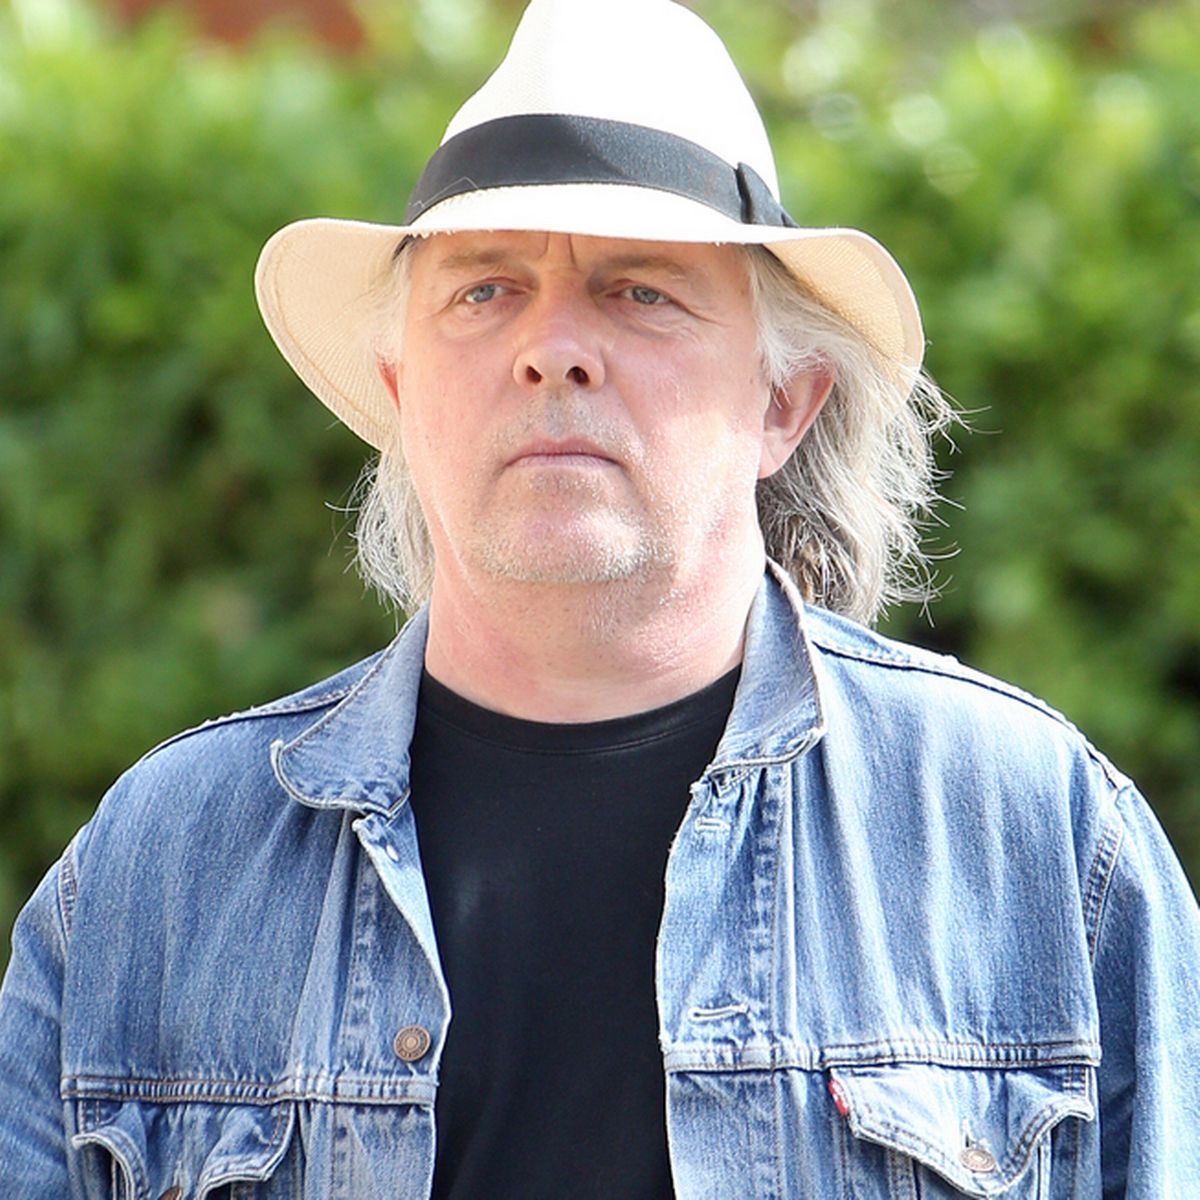 PAY MIDNIGHT EMBARGO Rik Mayall Here's What Nurse Alex Price From An American Werewolf In London Looks Like Now...